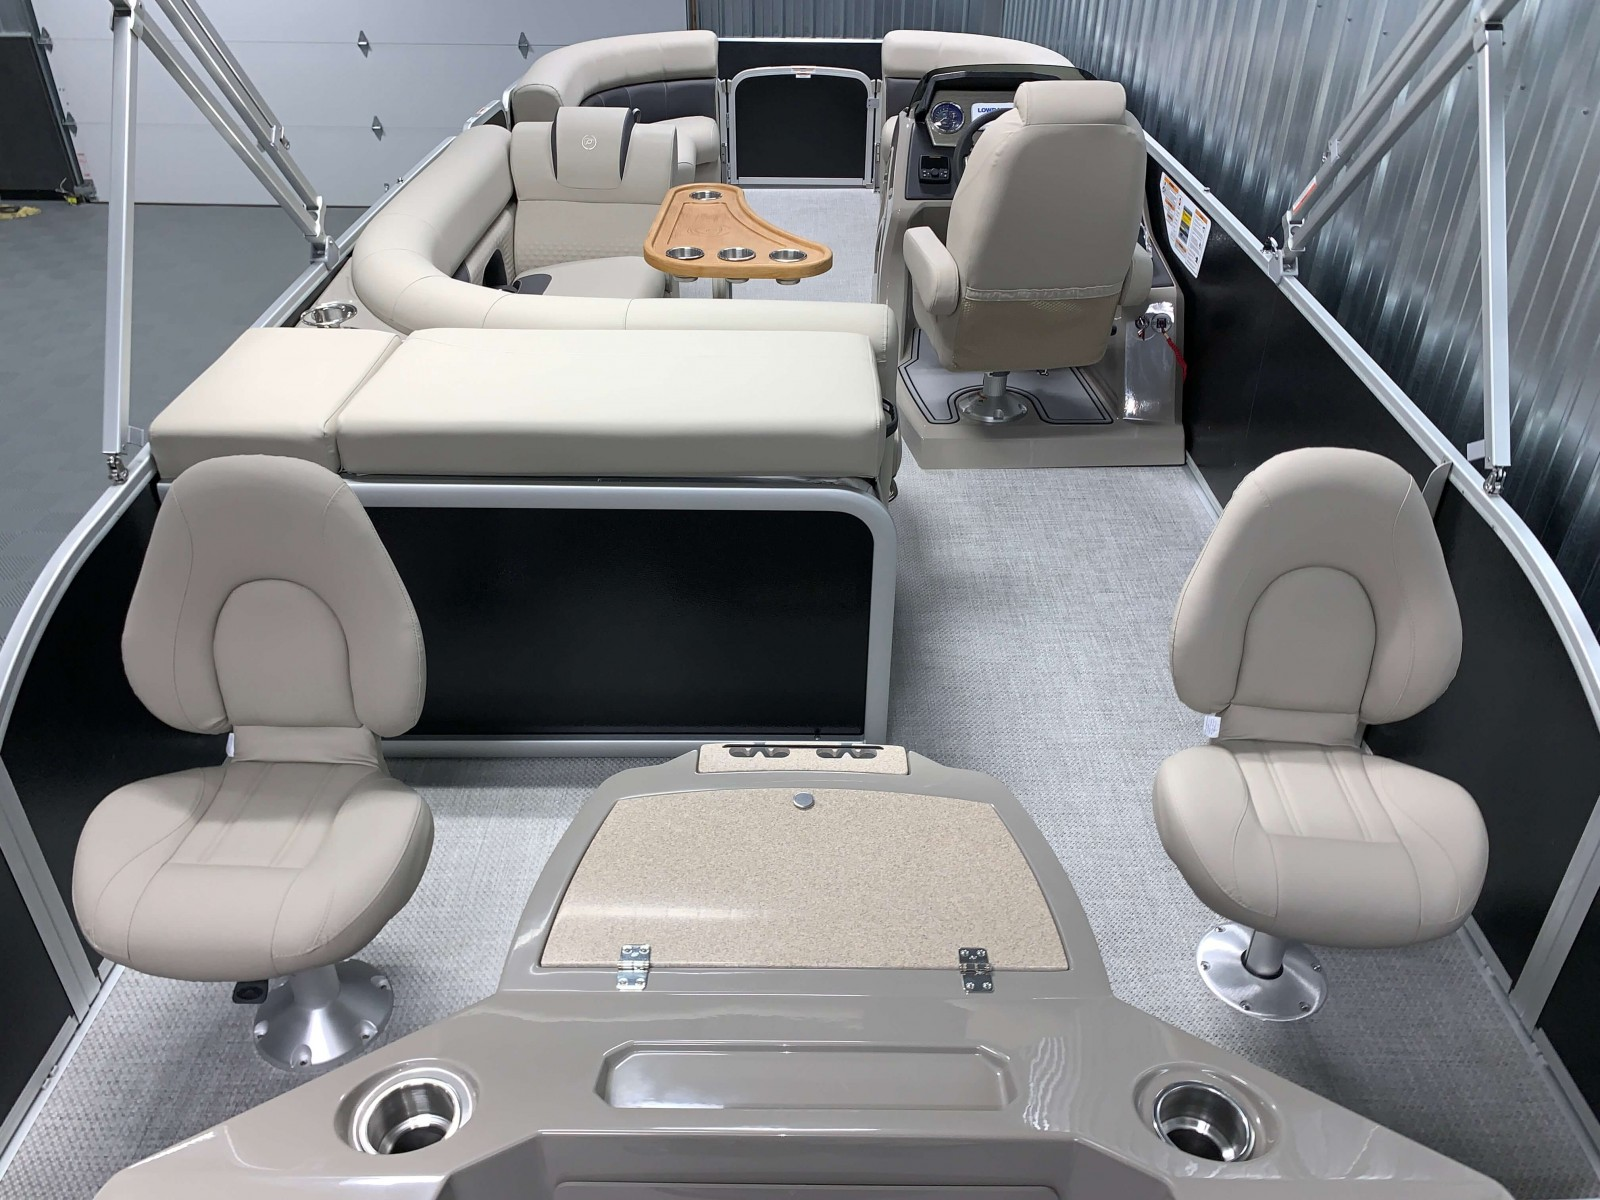 Rear Fishing Station of a 2020 Premier 220 Gemini Fishing Pontoon